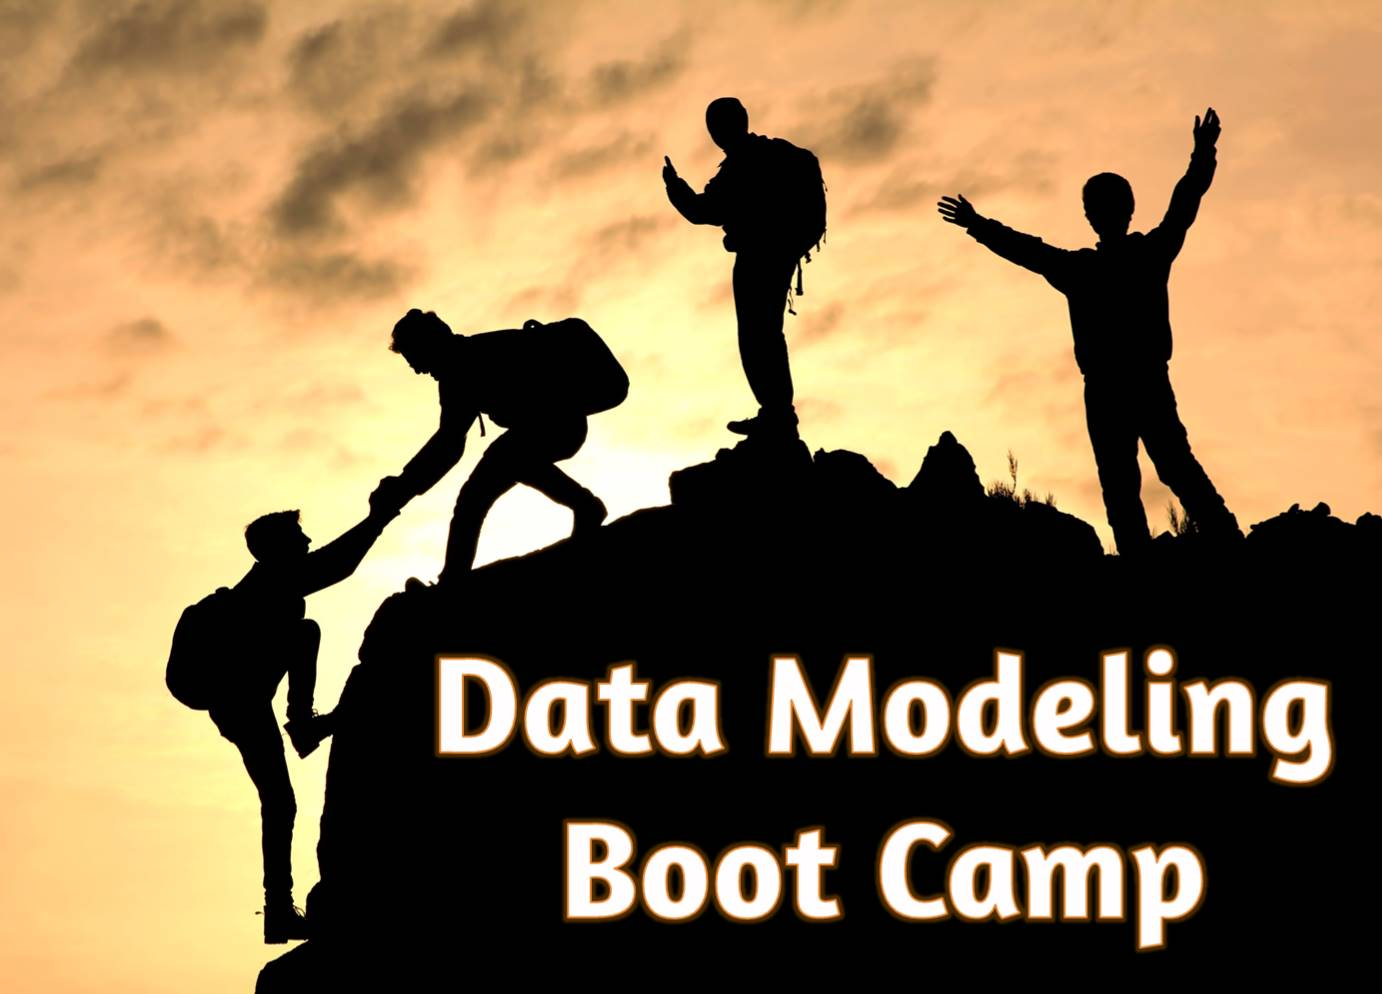 Data Modeling Boot Camp